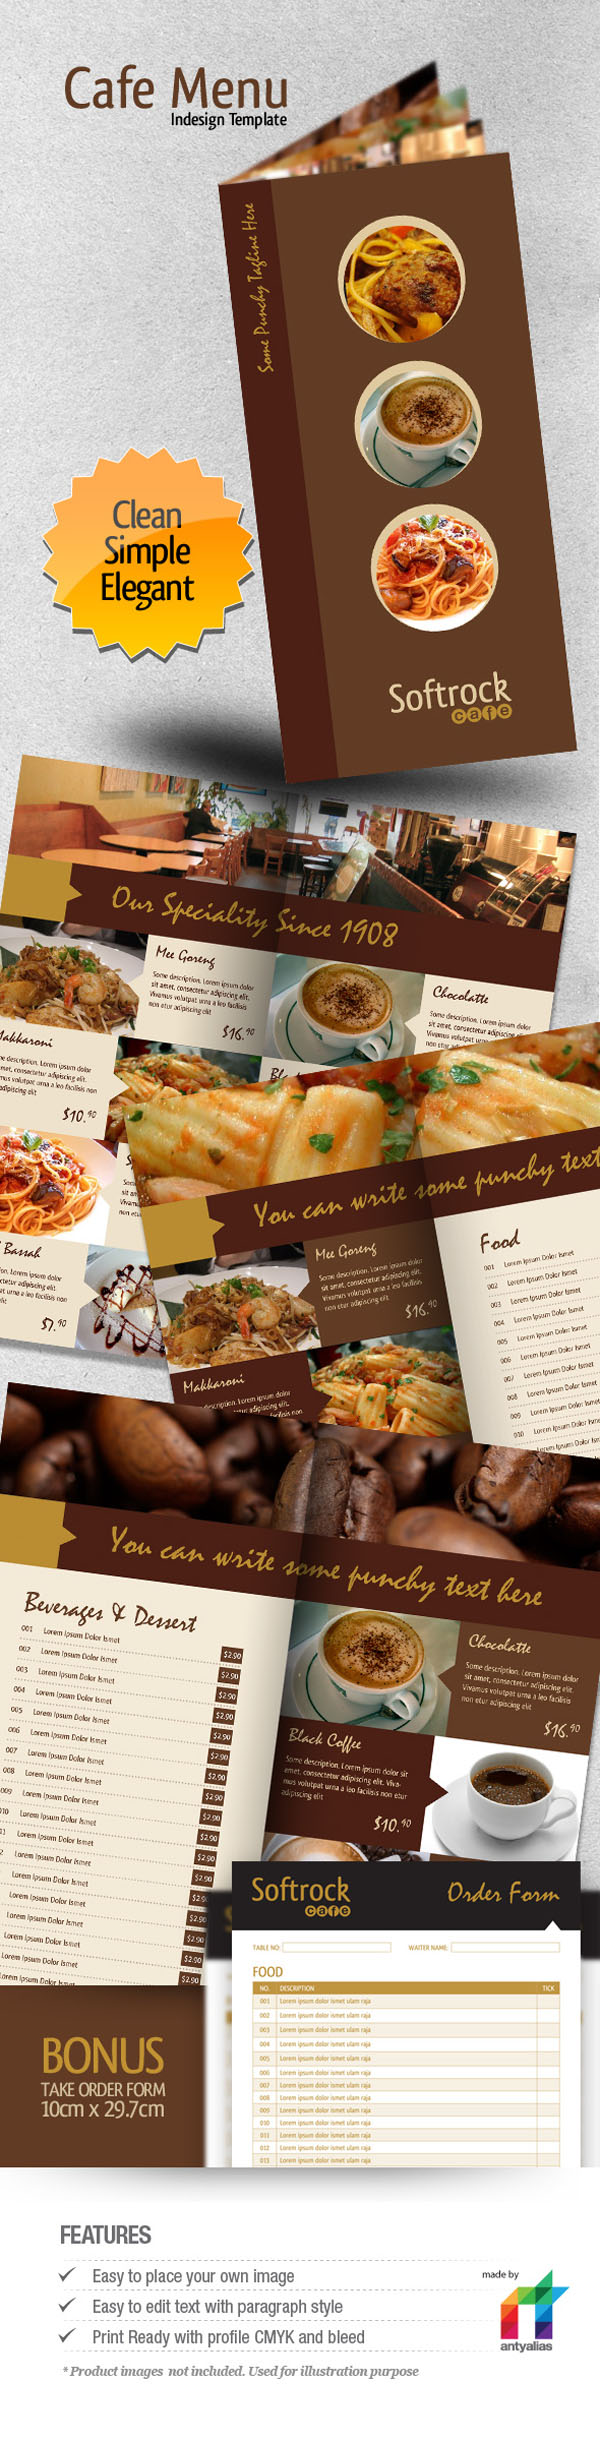 cafe_menu_indesign_template_by_antyalias-d3gb3a5